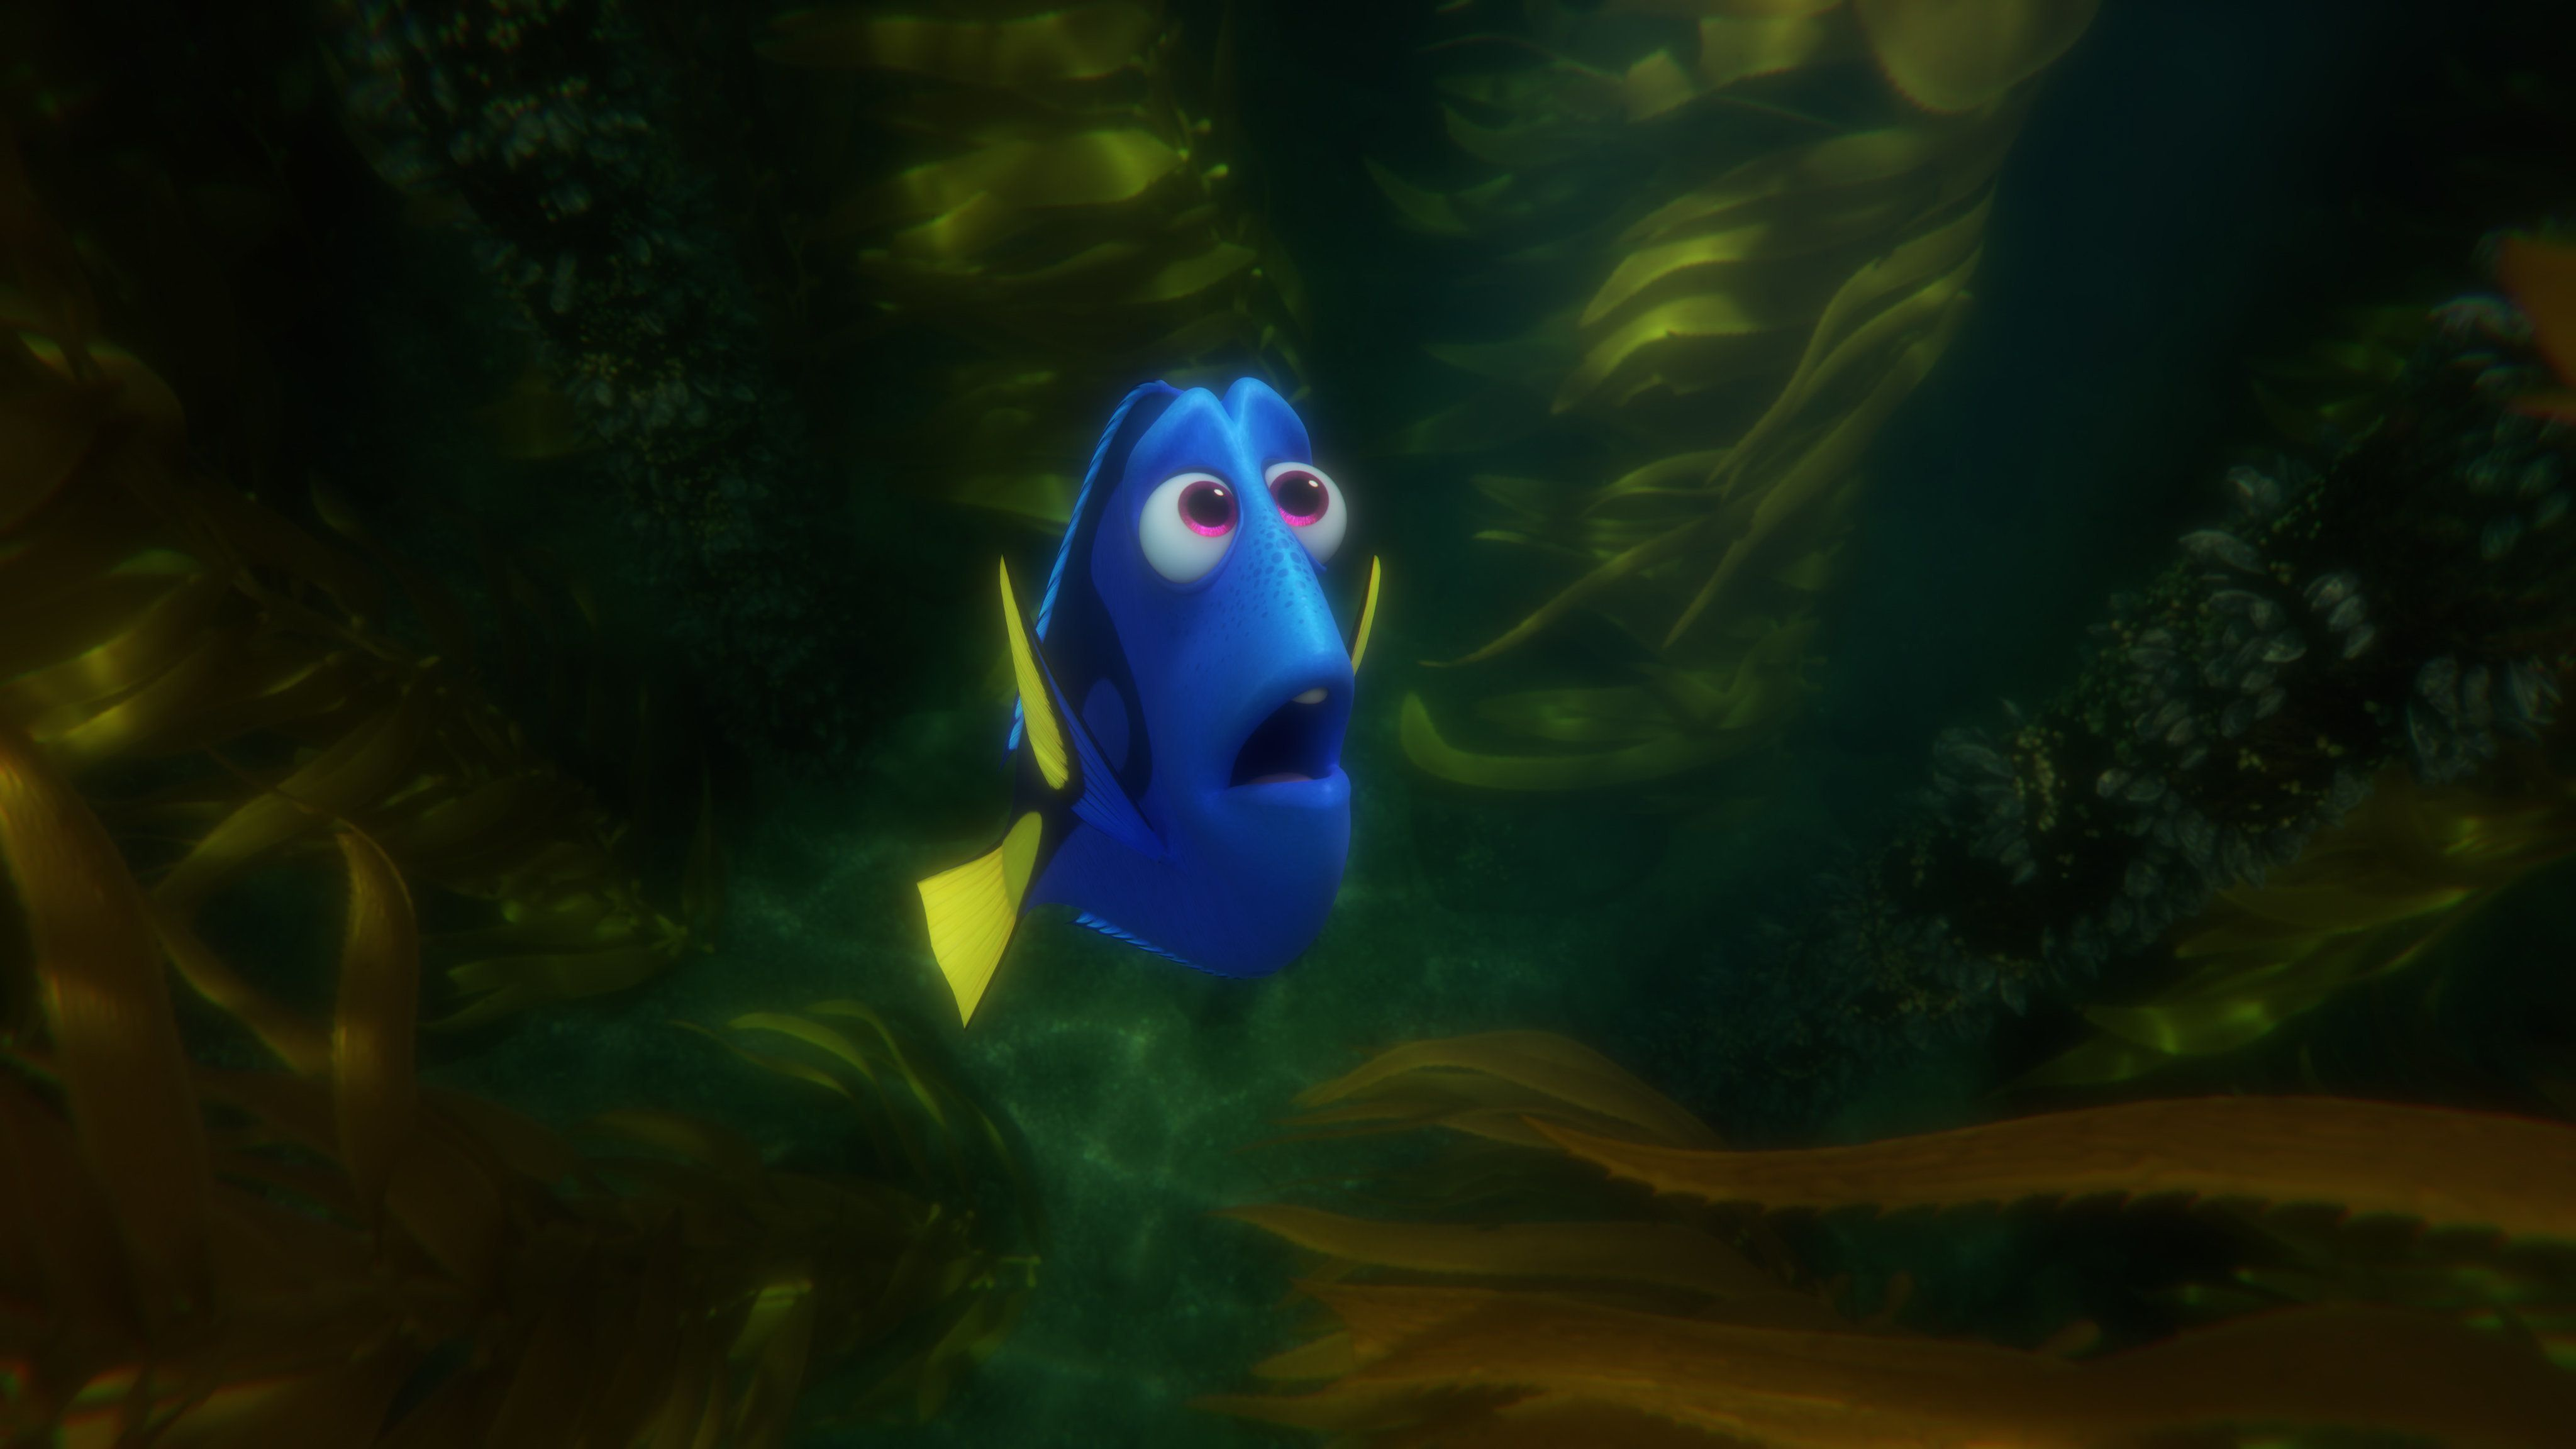 """LOST AND FOUND — In """"Finding Dory,"""" everyone's favorite forgetful blue tang Dory finds herself lost in the kelp forest while searching for answers about her past. Directed by Andrew Stanton (""""Finding Nemo,"""" """"WALL•E"""") and produced by Lindsey Collins (co-producer """"WALL•E""""), """"Finding Dory"""" swims into theaters June 17, 2016. ©2016 Disney•Pixar. All Rights Reserved."""